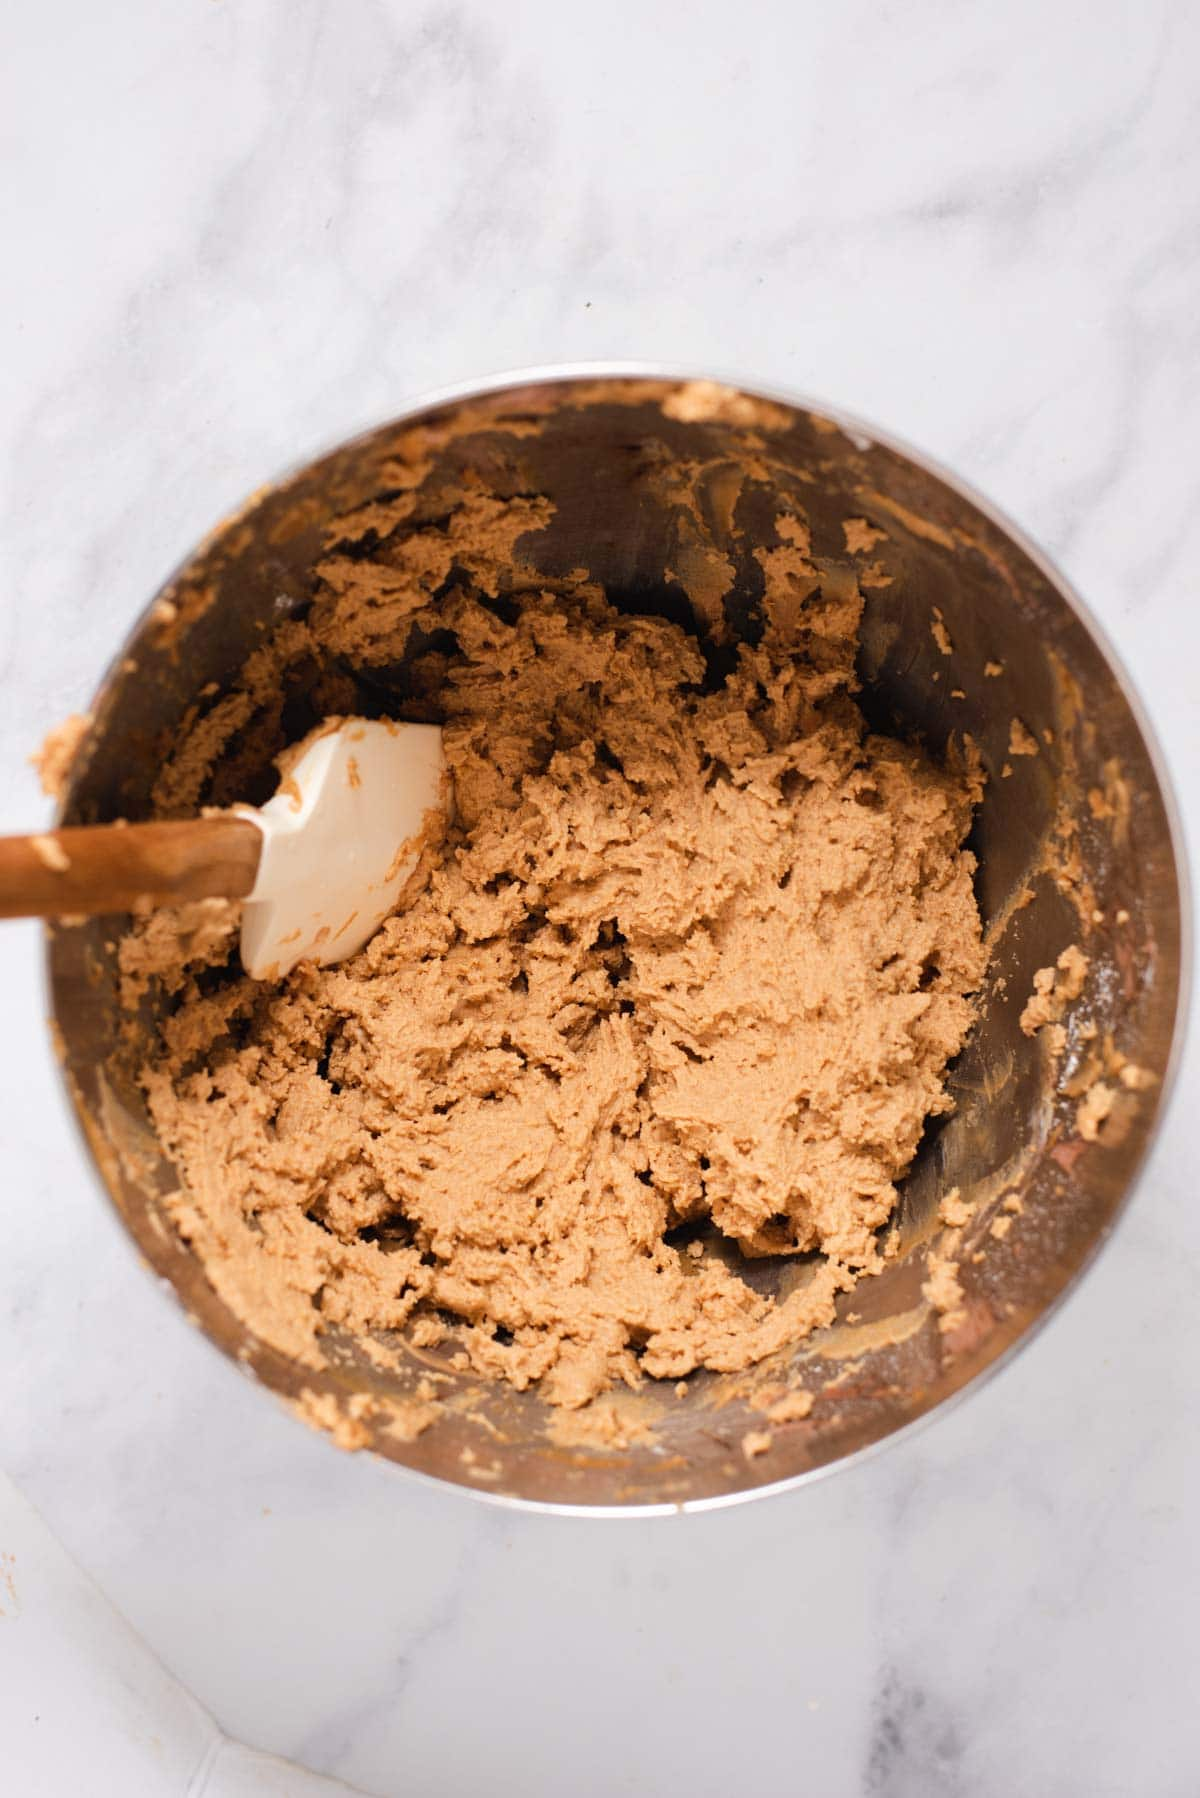 Overhead view of mixing bowl filled with peanut butter filling and white spatula